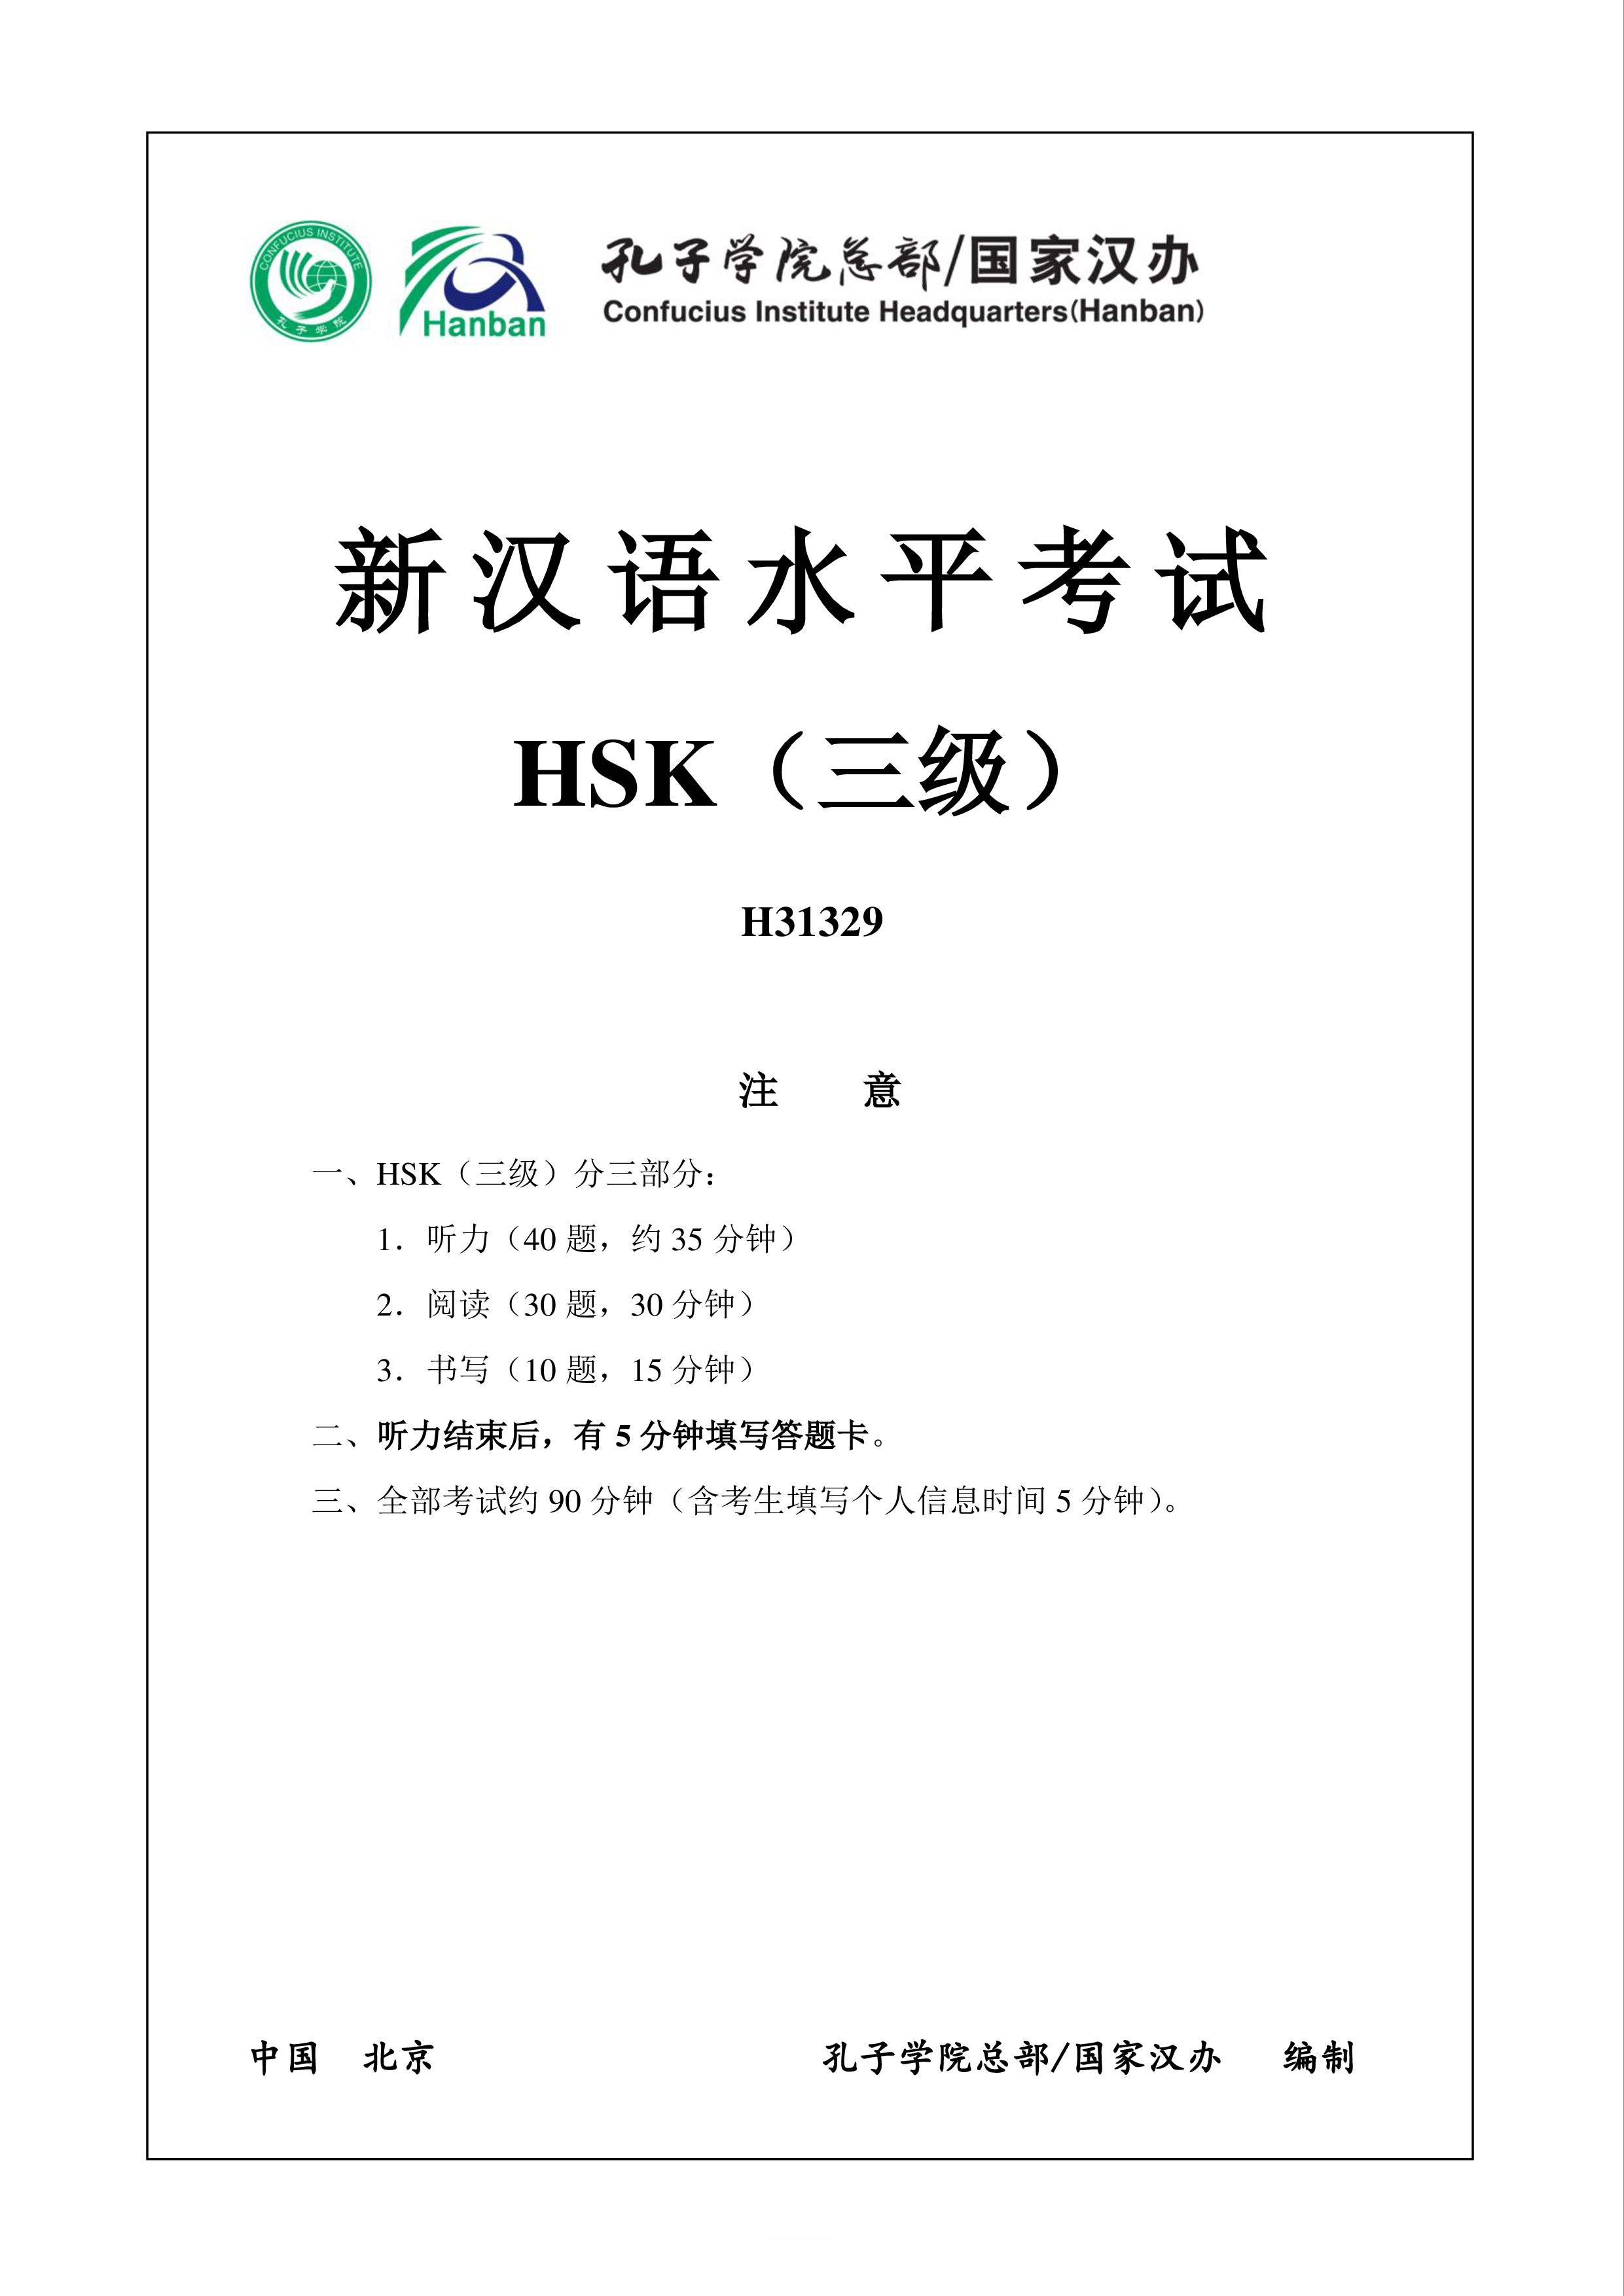 HSK3 Chinese Exam including Answers # H31329 main image